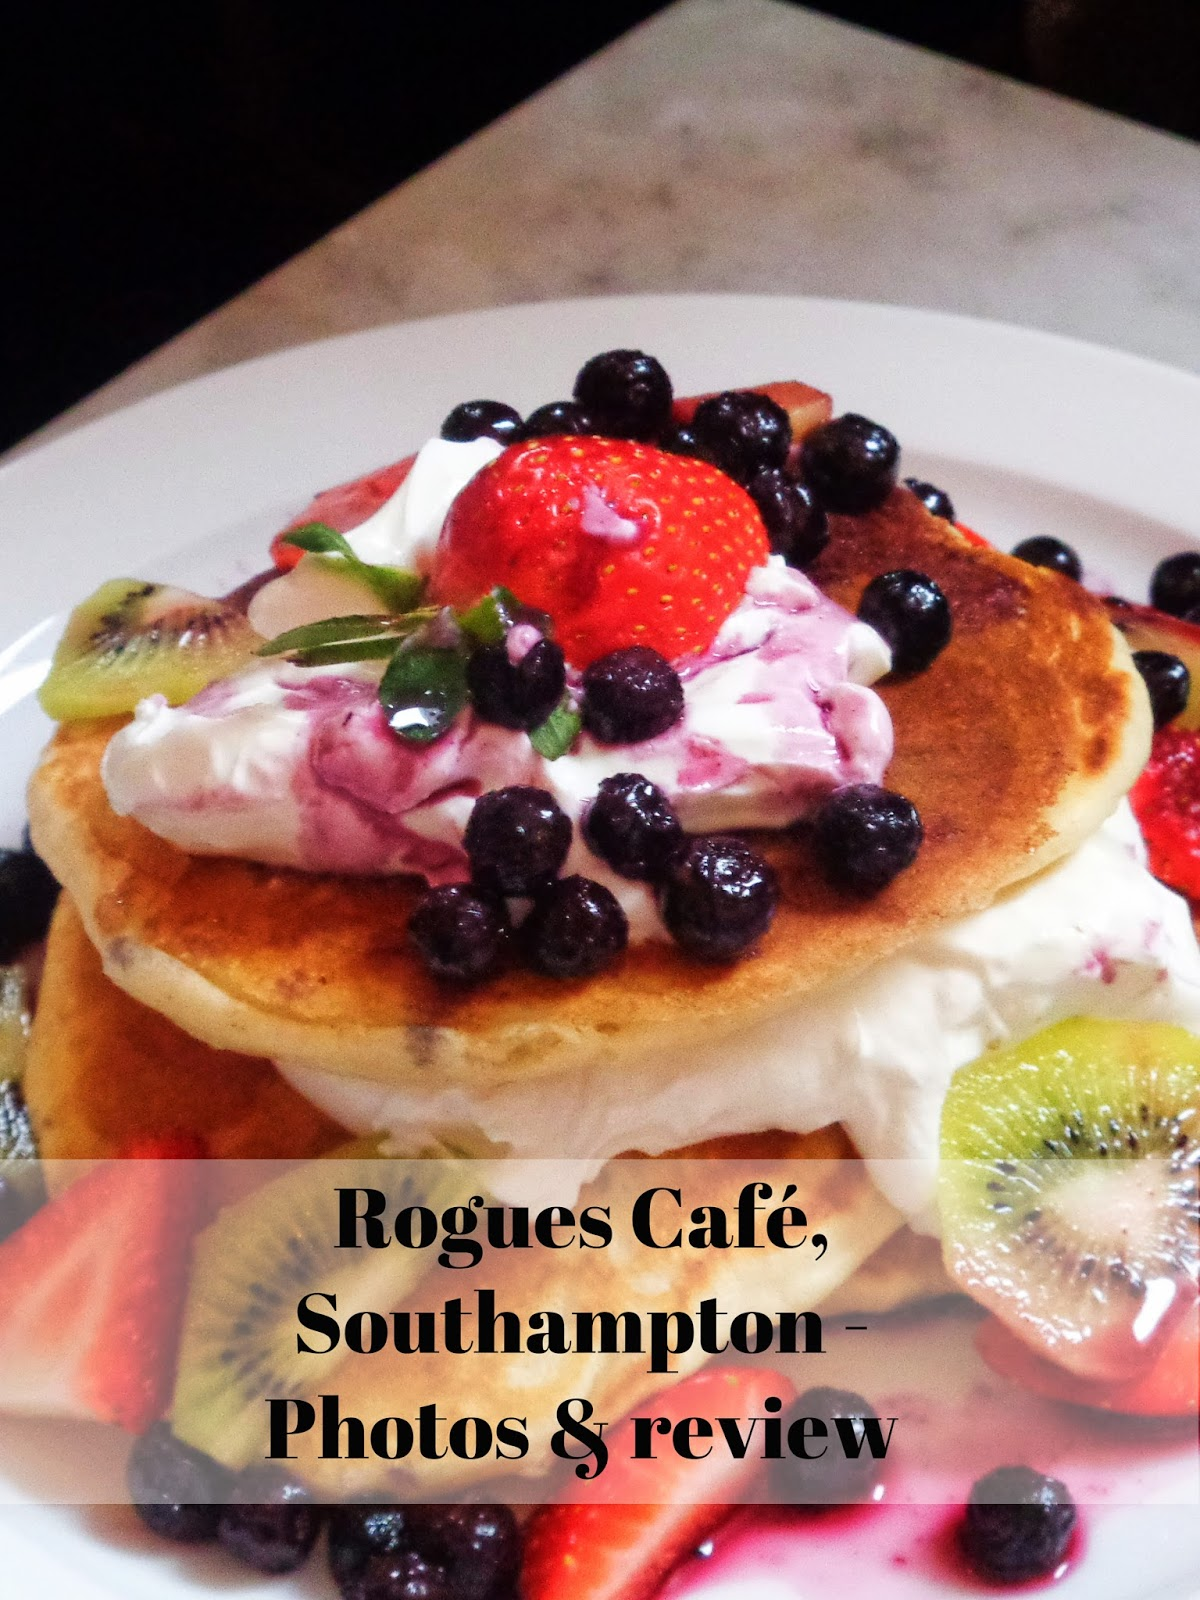 The Rogues Café, Southampton